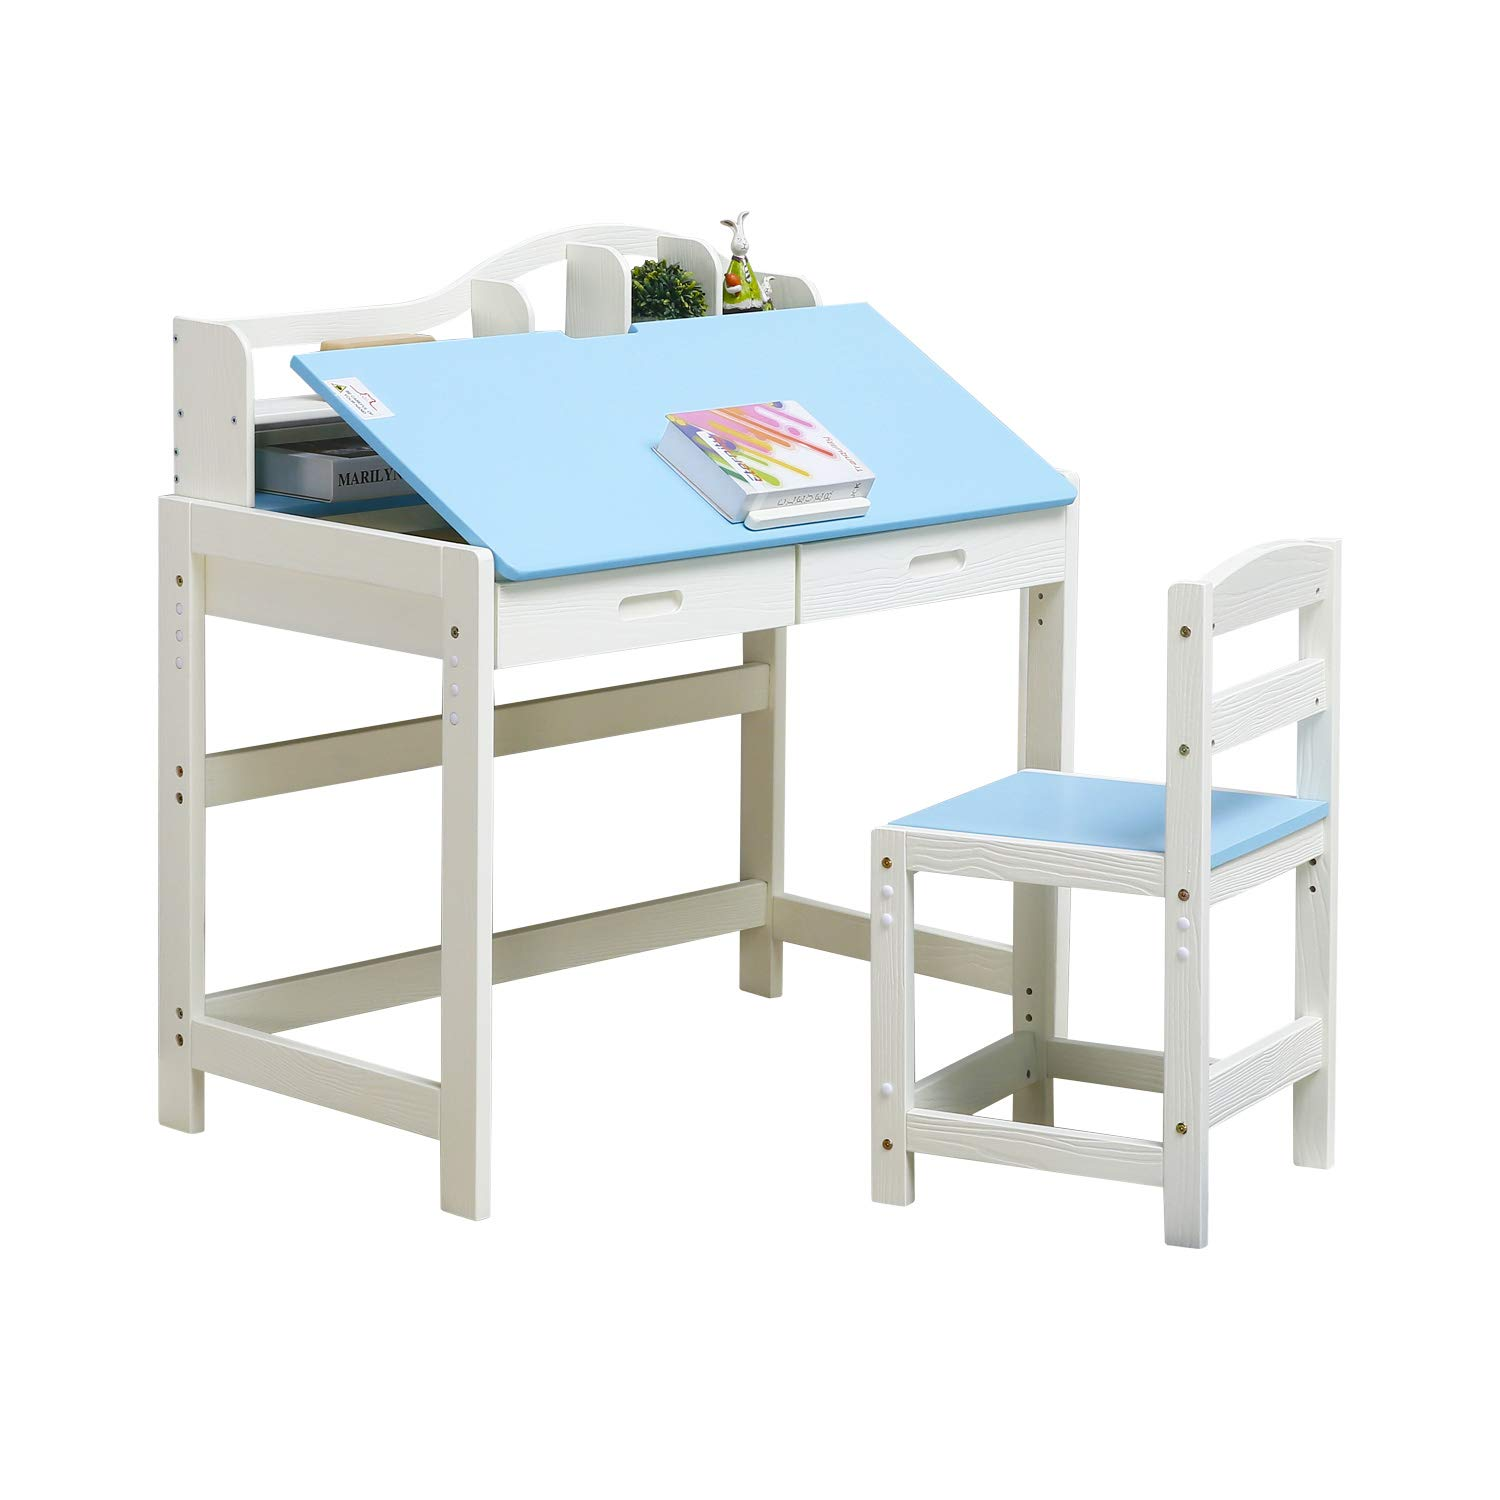 JSY Home Furniture Height Adjustable Solid Wood Children's Table and Chair Set with Adjustable Sloping Surface, Great for Children's Bedroom (Blue) by JSY Home Furniture